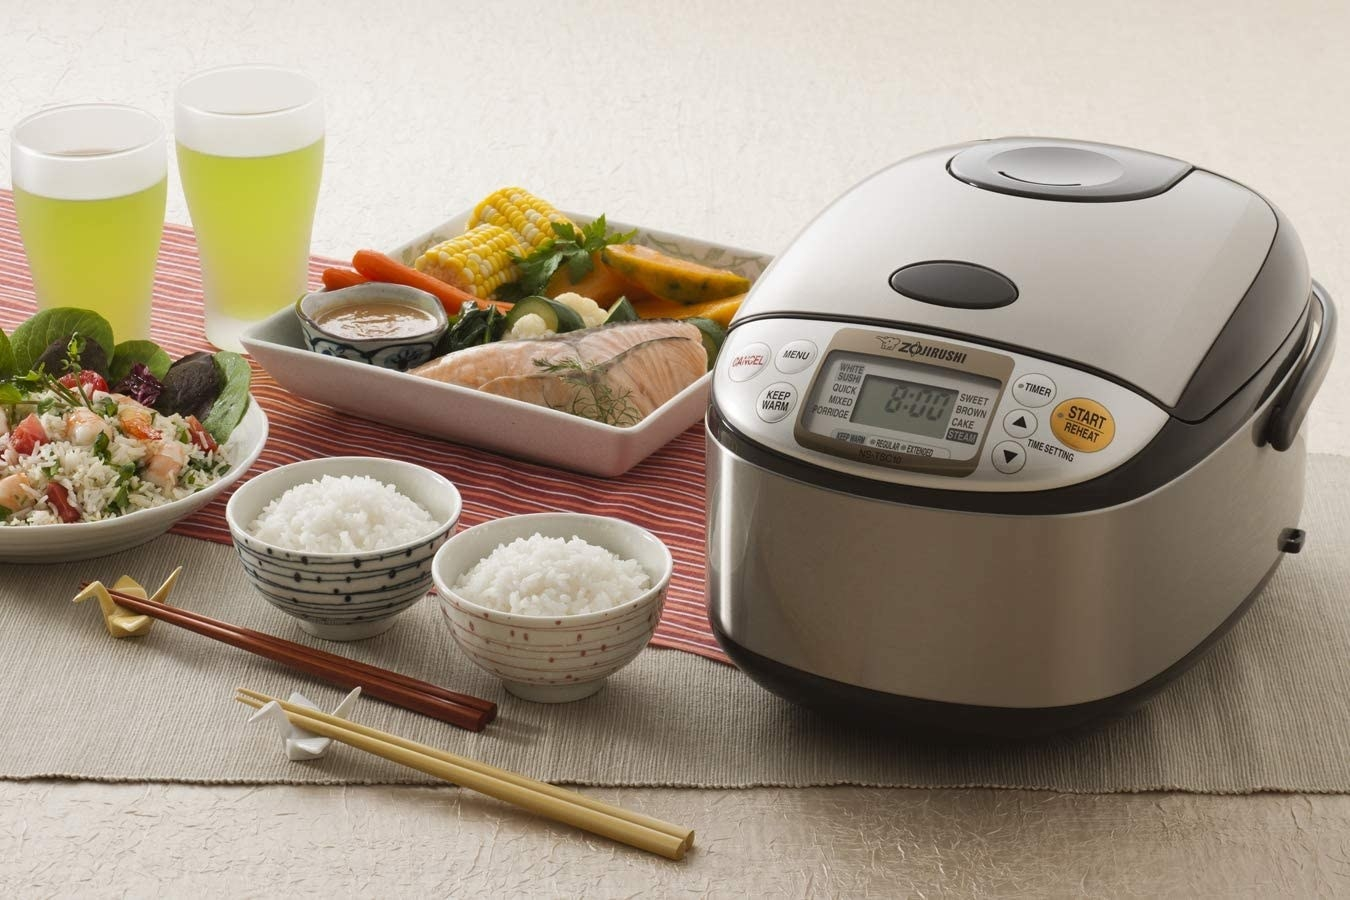 the rice cooker beside bowls of rice